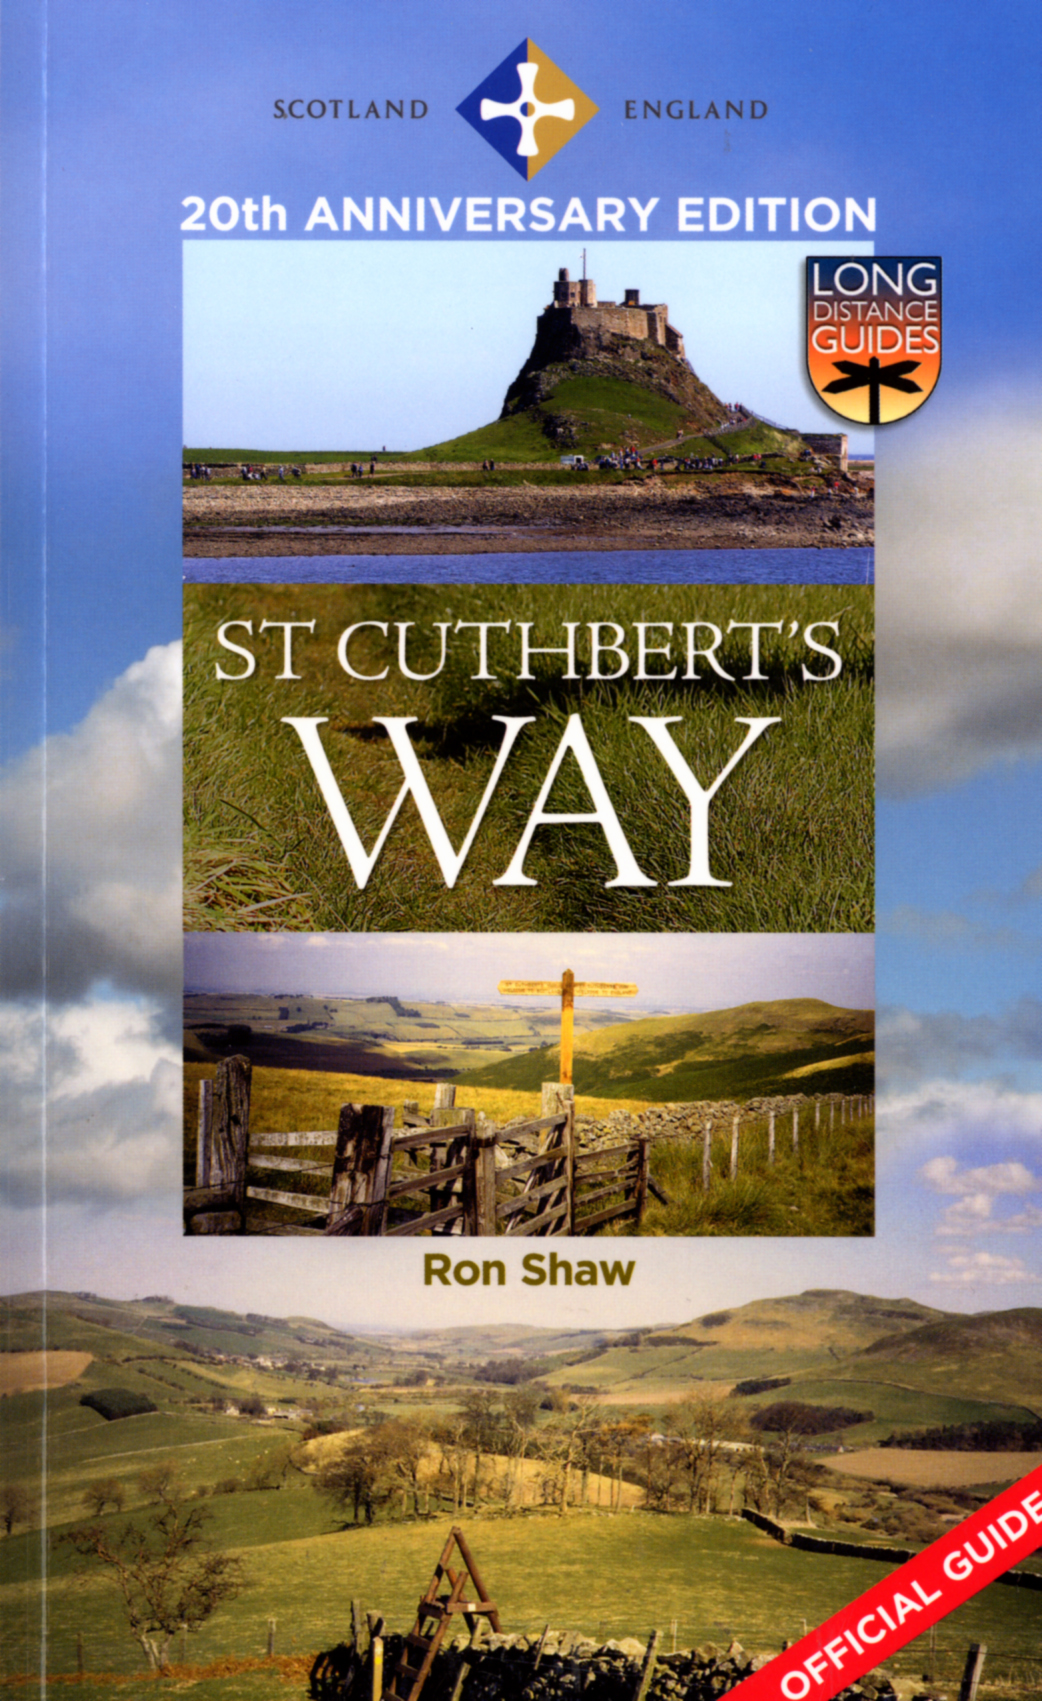 St Cuthbert's Way Official Guide